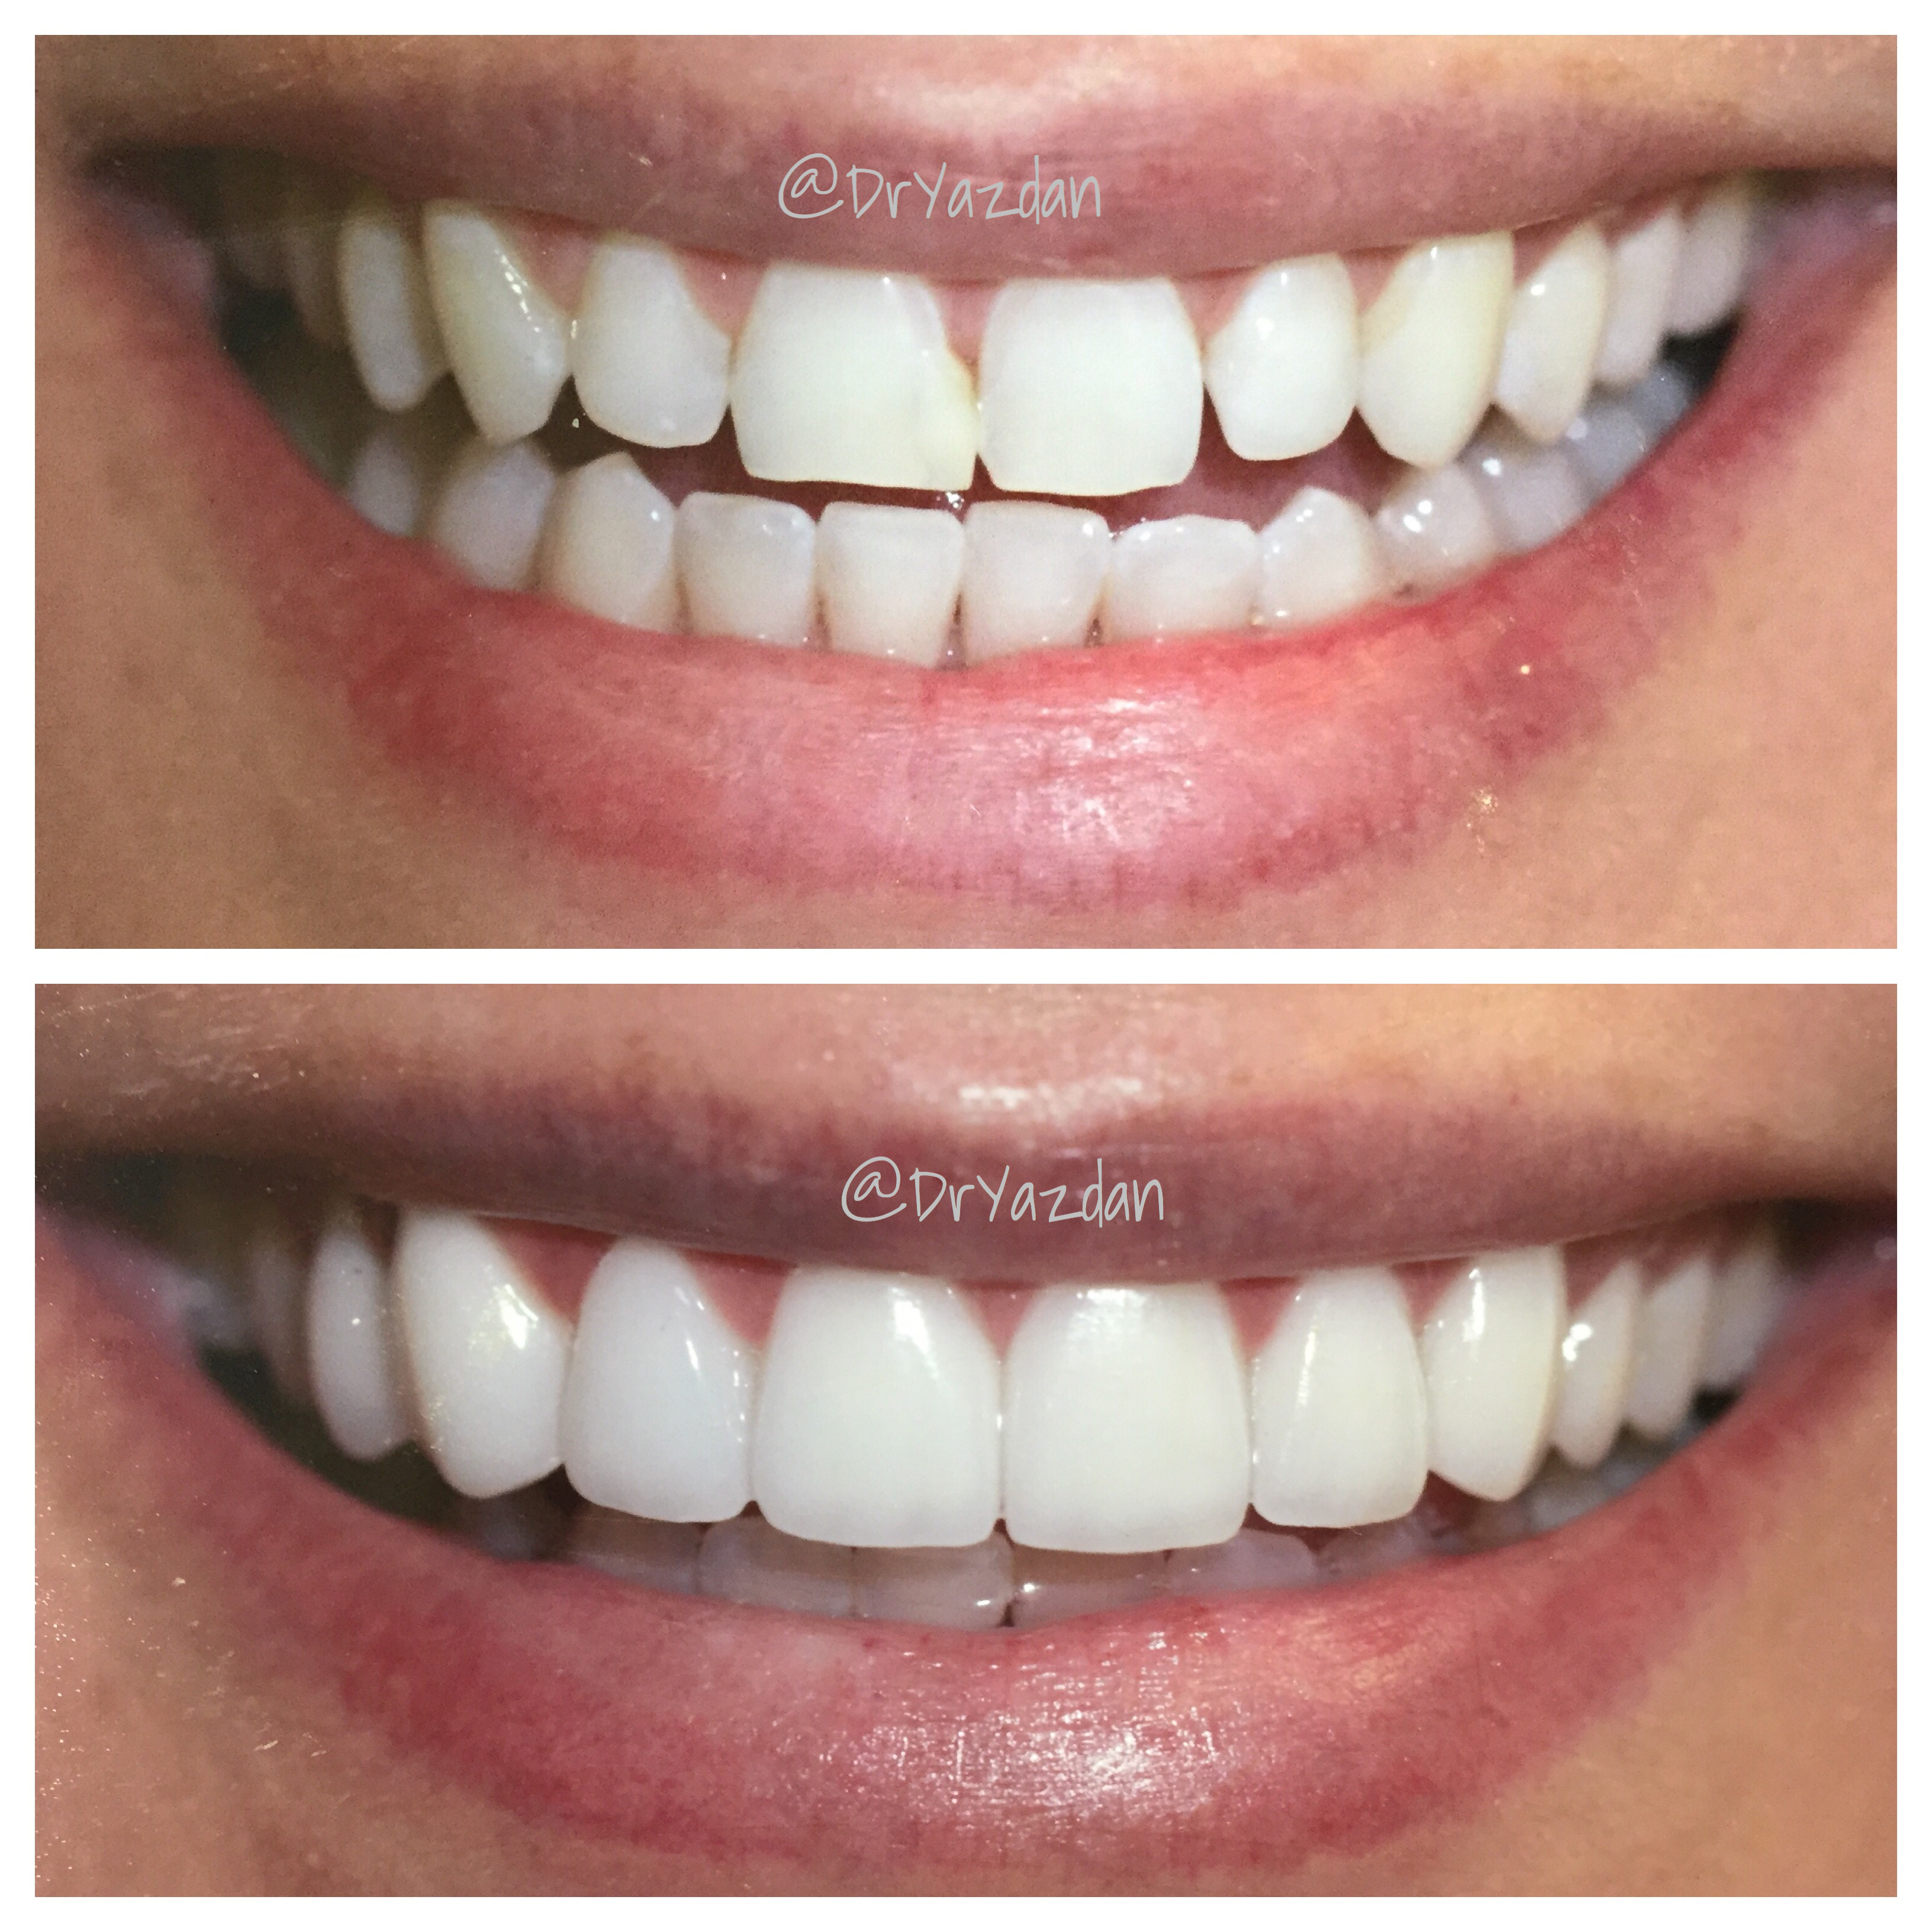 How to Care for Your New Dental Veneers - Center for Restorative